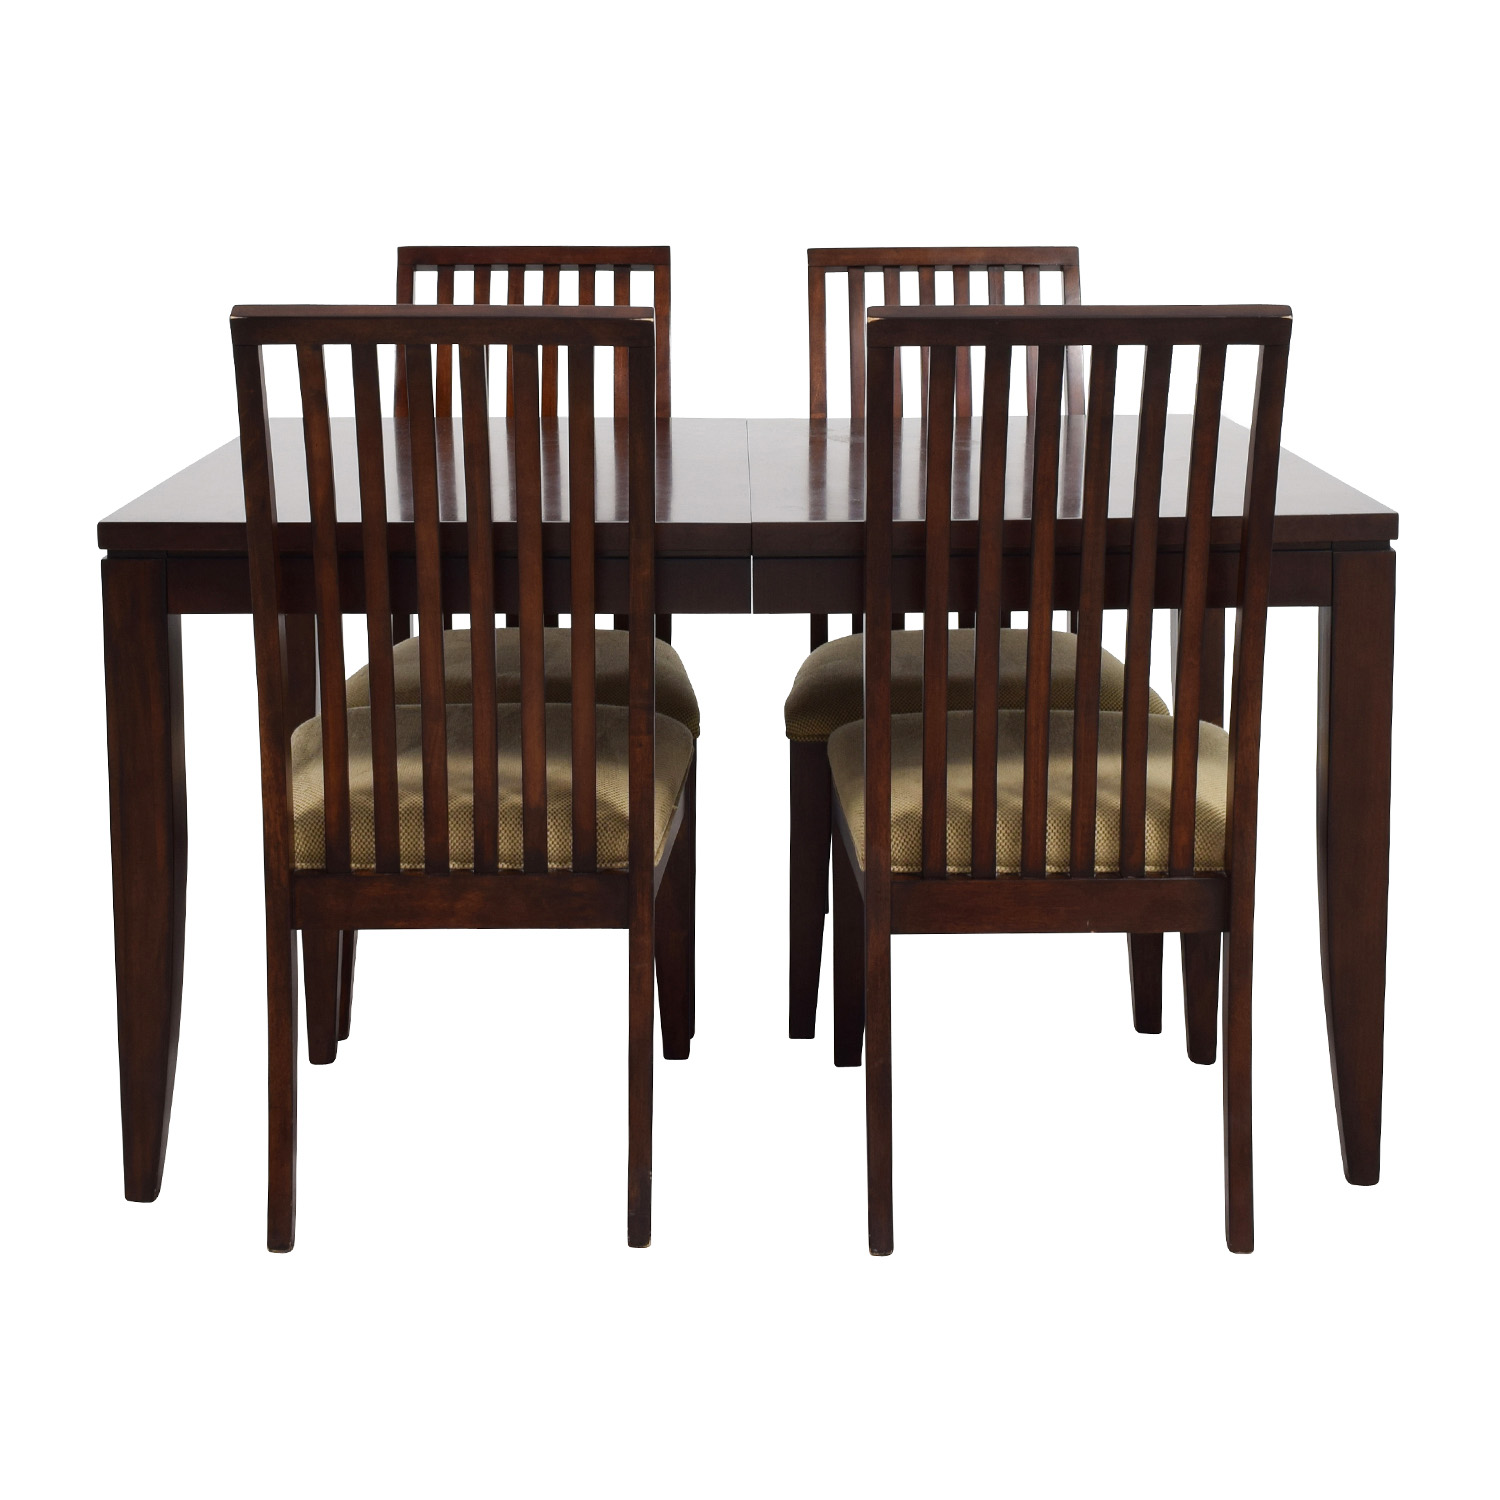 OFF Z Gallerie Z Gallerie Black and Glass Dining Set Tables